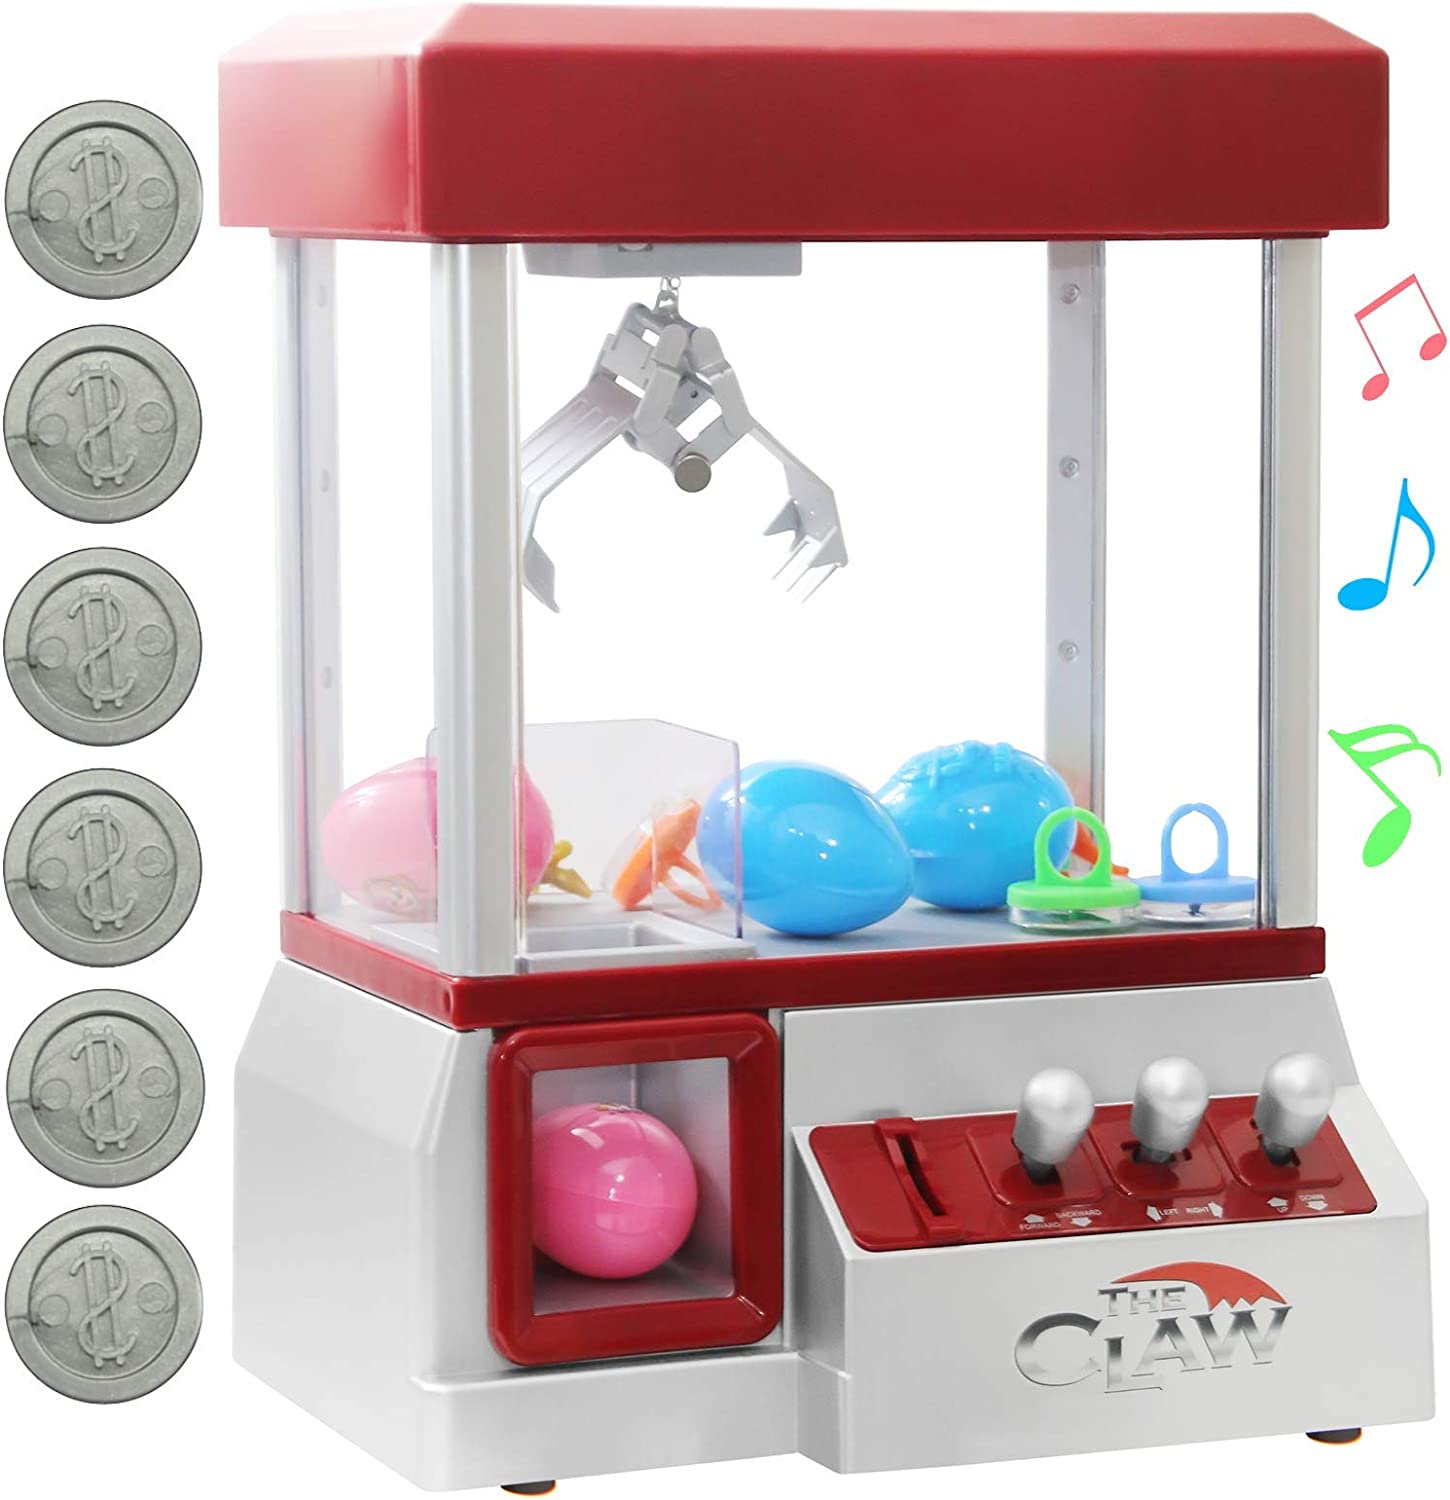 Bundaloo Claw Machine Arcade Game   Candy Grabber & Prize Dispenser Vending Machine Toy for Kids, with Music   Best Birthday & Christmas Gifts for Boys & Girls (Red Claw)